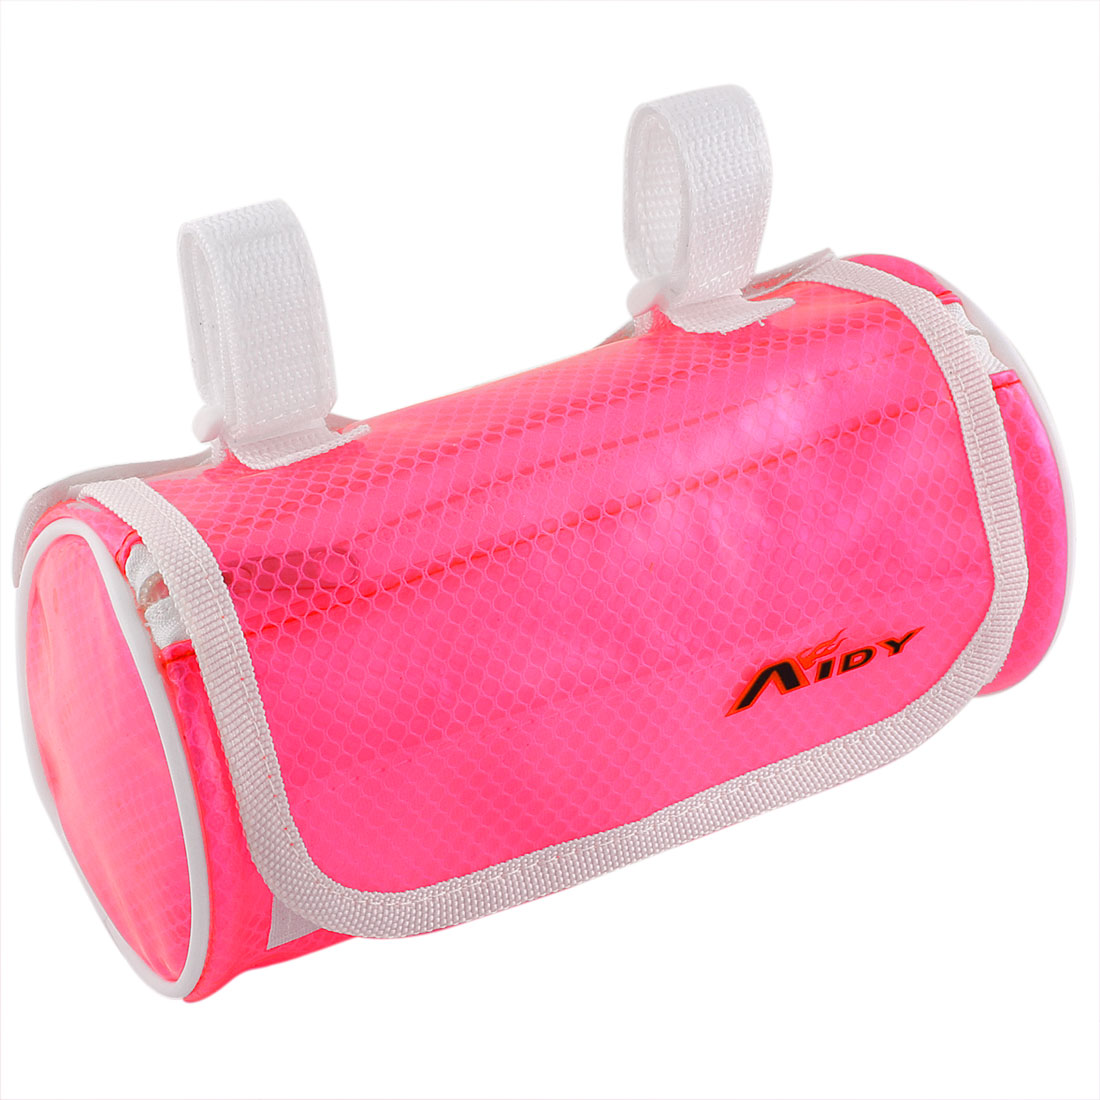 Cycling Bike Bicycle Front Pannier Basket Water Resistant Handlebar Bar Pouch Bag Clear Fuchsia